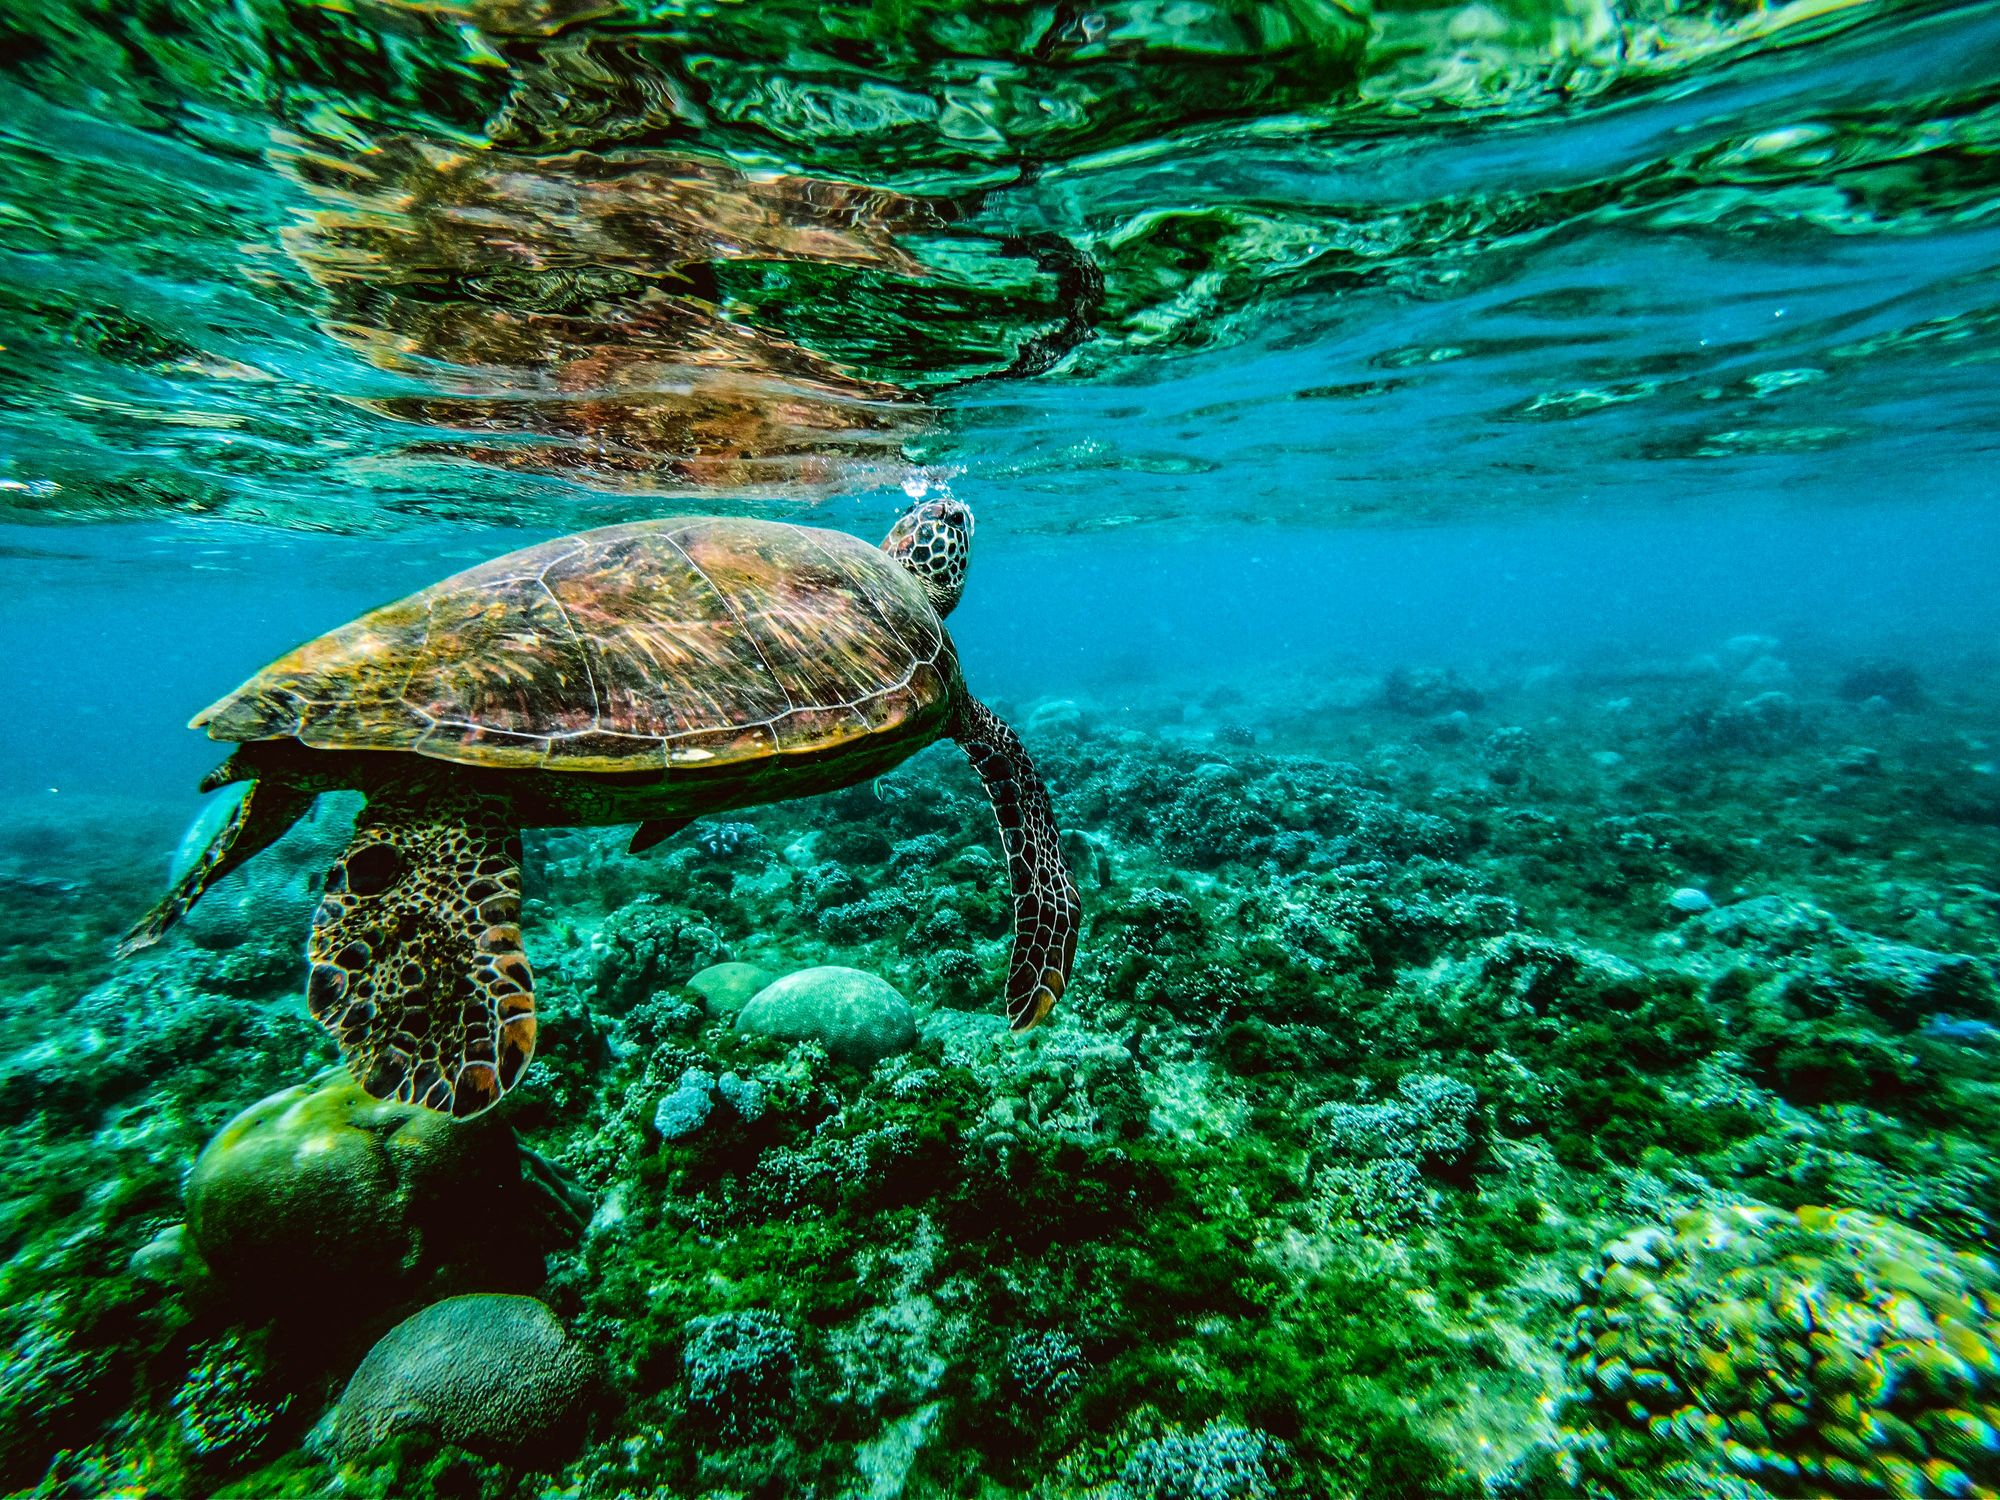 Sea turtles swimming just beneath the surface of the water in Apo Island, Negros Oriental, Philippines